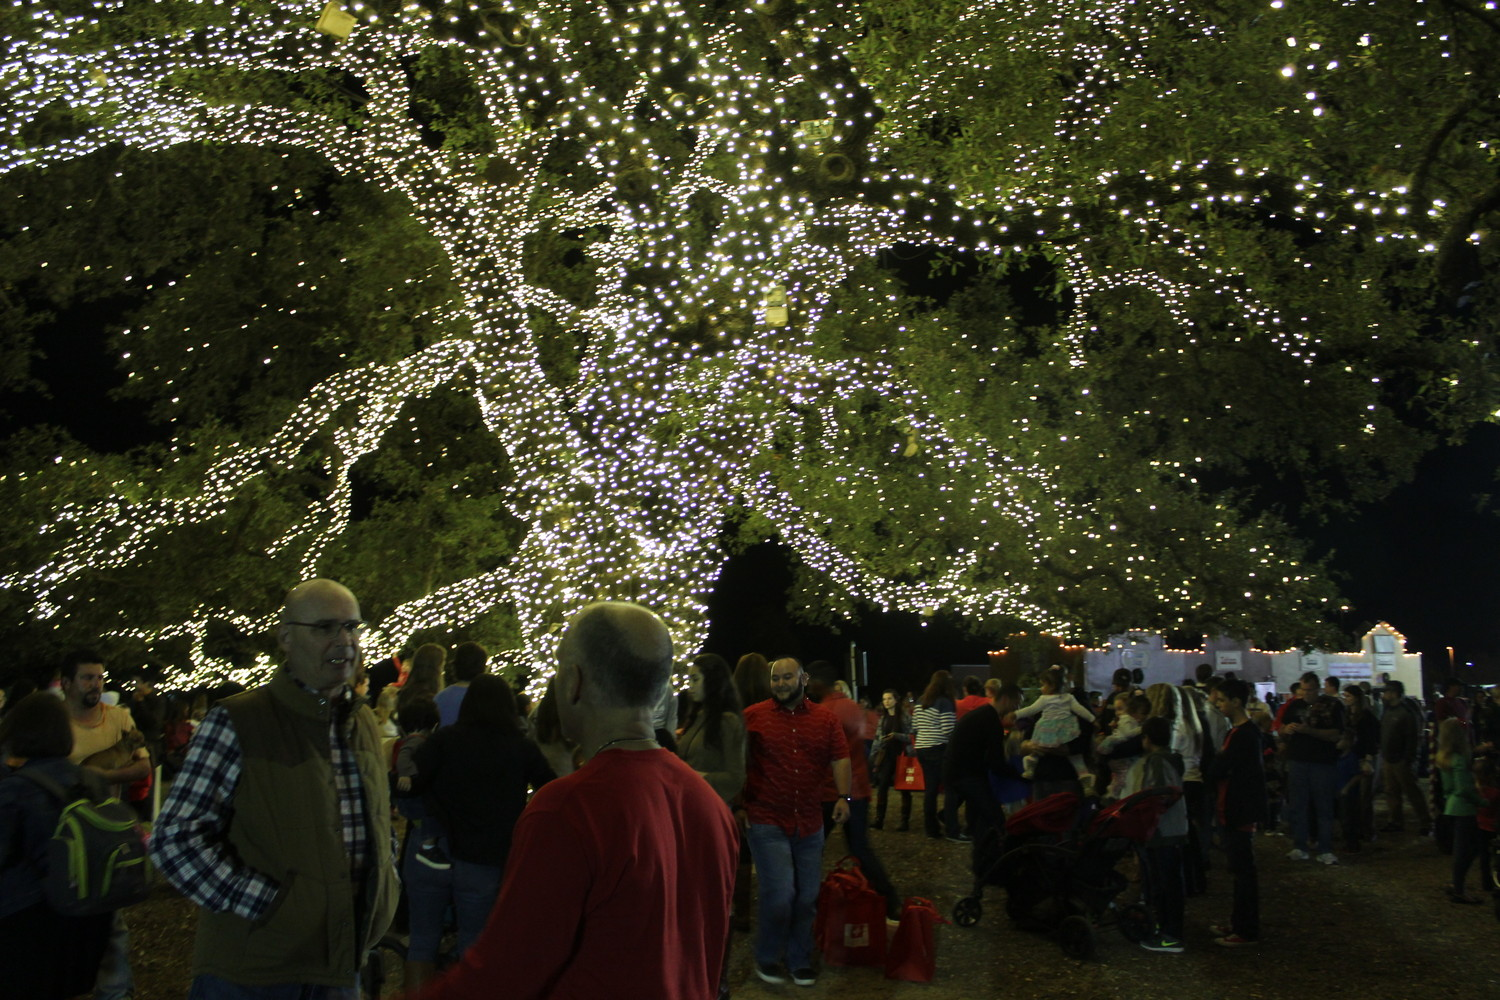 The century-old oak tree at Heritage Oak Park in Cedar Park is lit up with nearly 72,000 white lights, and will they will remain for the rest of the holiday season.